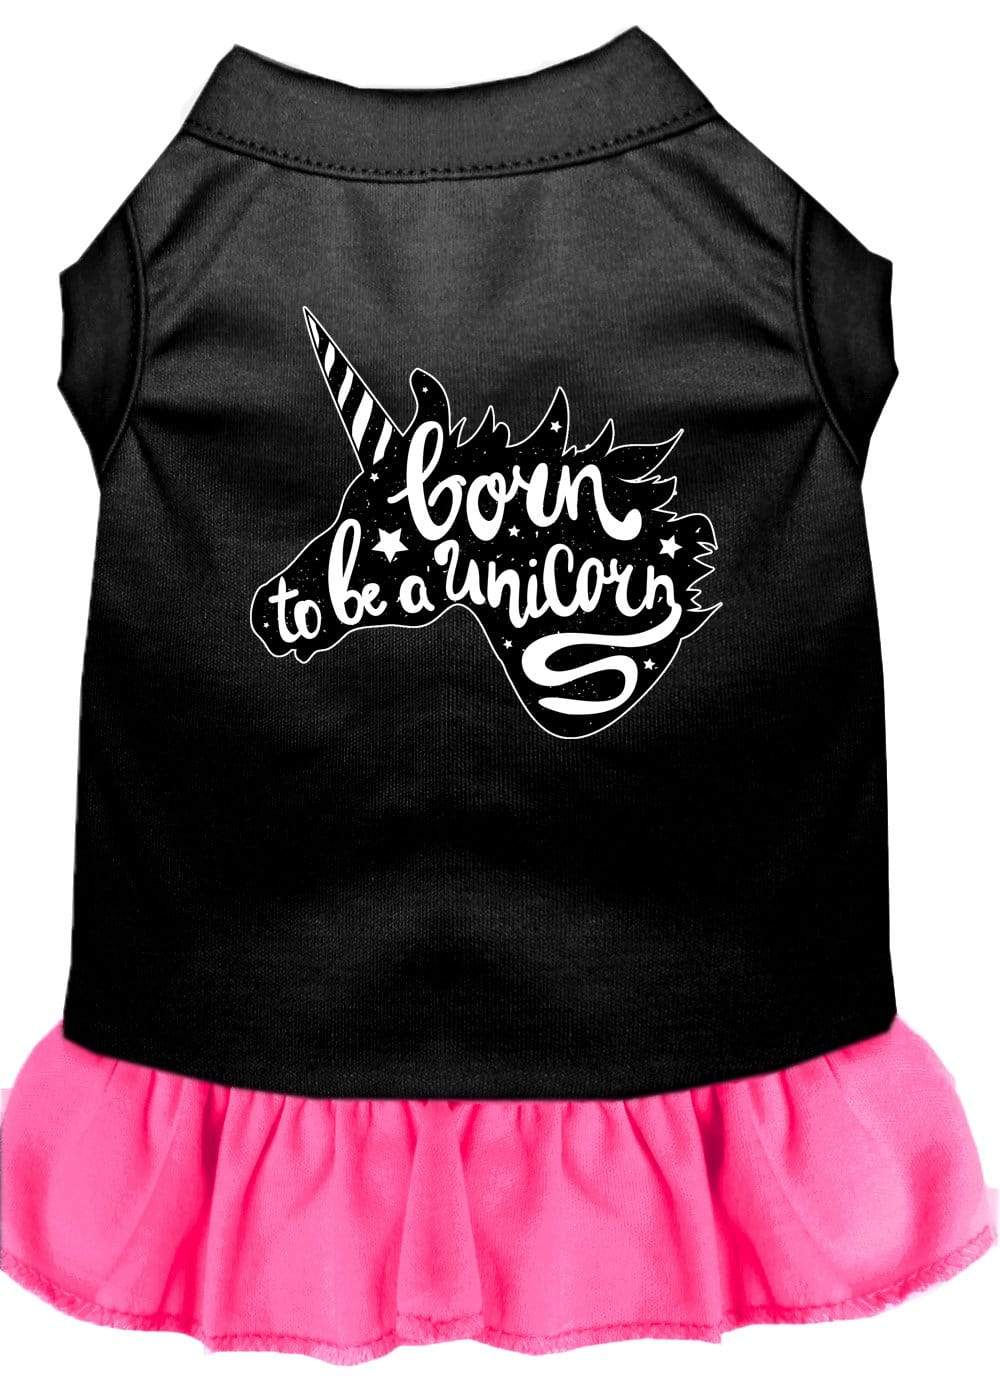 Doggy Stylz Dog-products Unicorns! Black With Bright Pink / Large Born To Be A Unicorn Screen Print Dog Dress